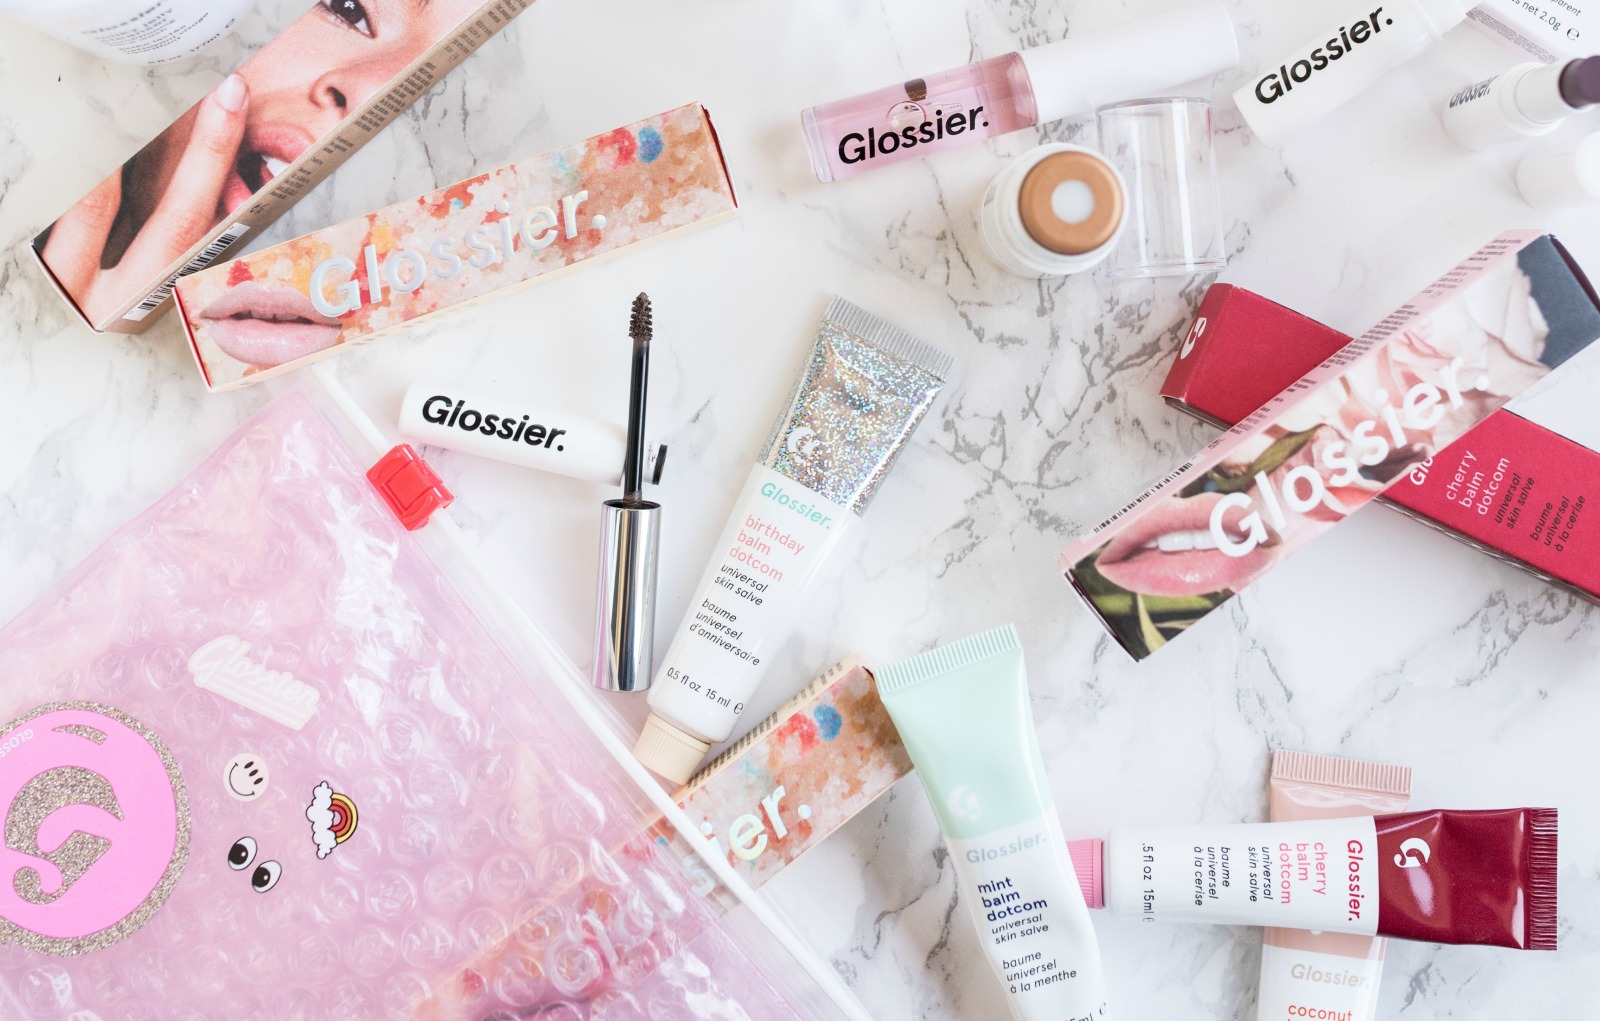 Glossier top picks